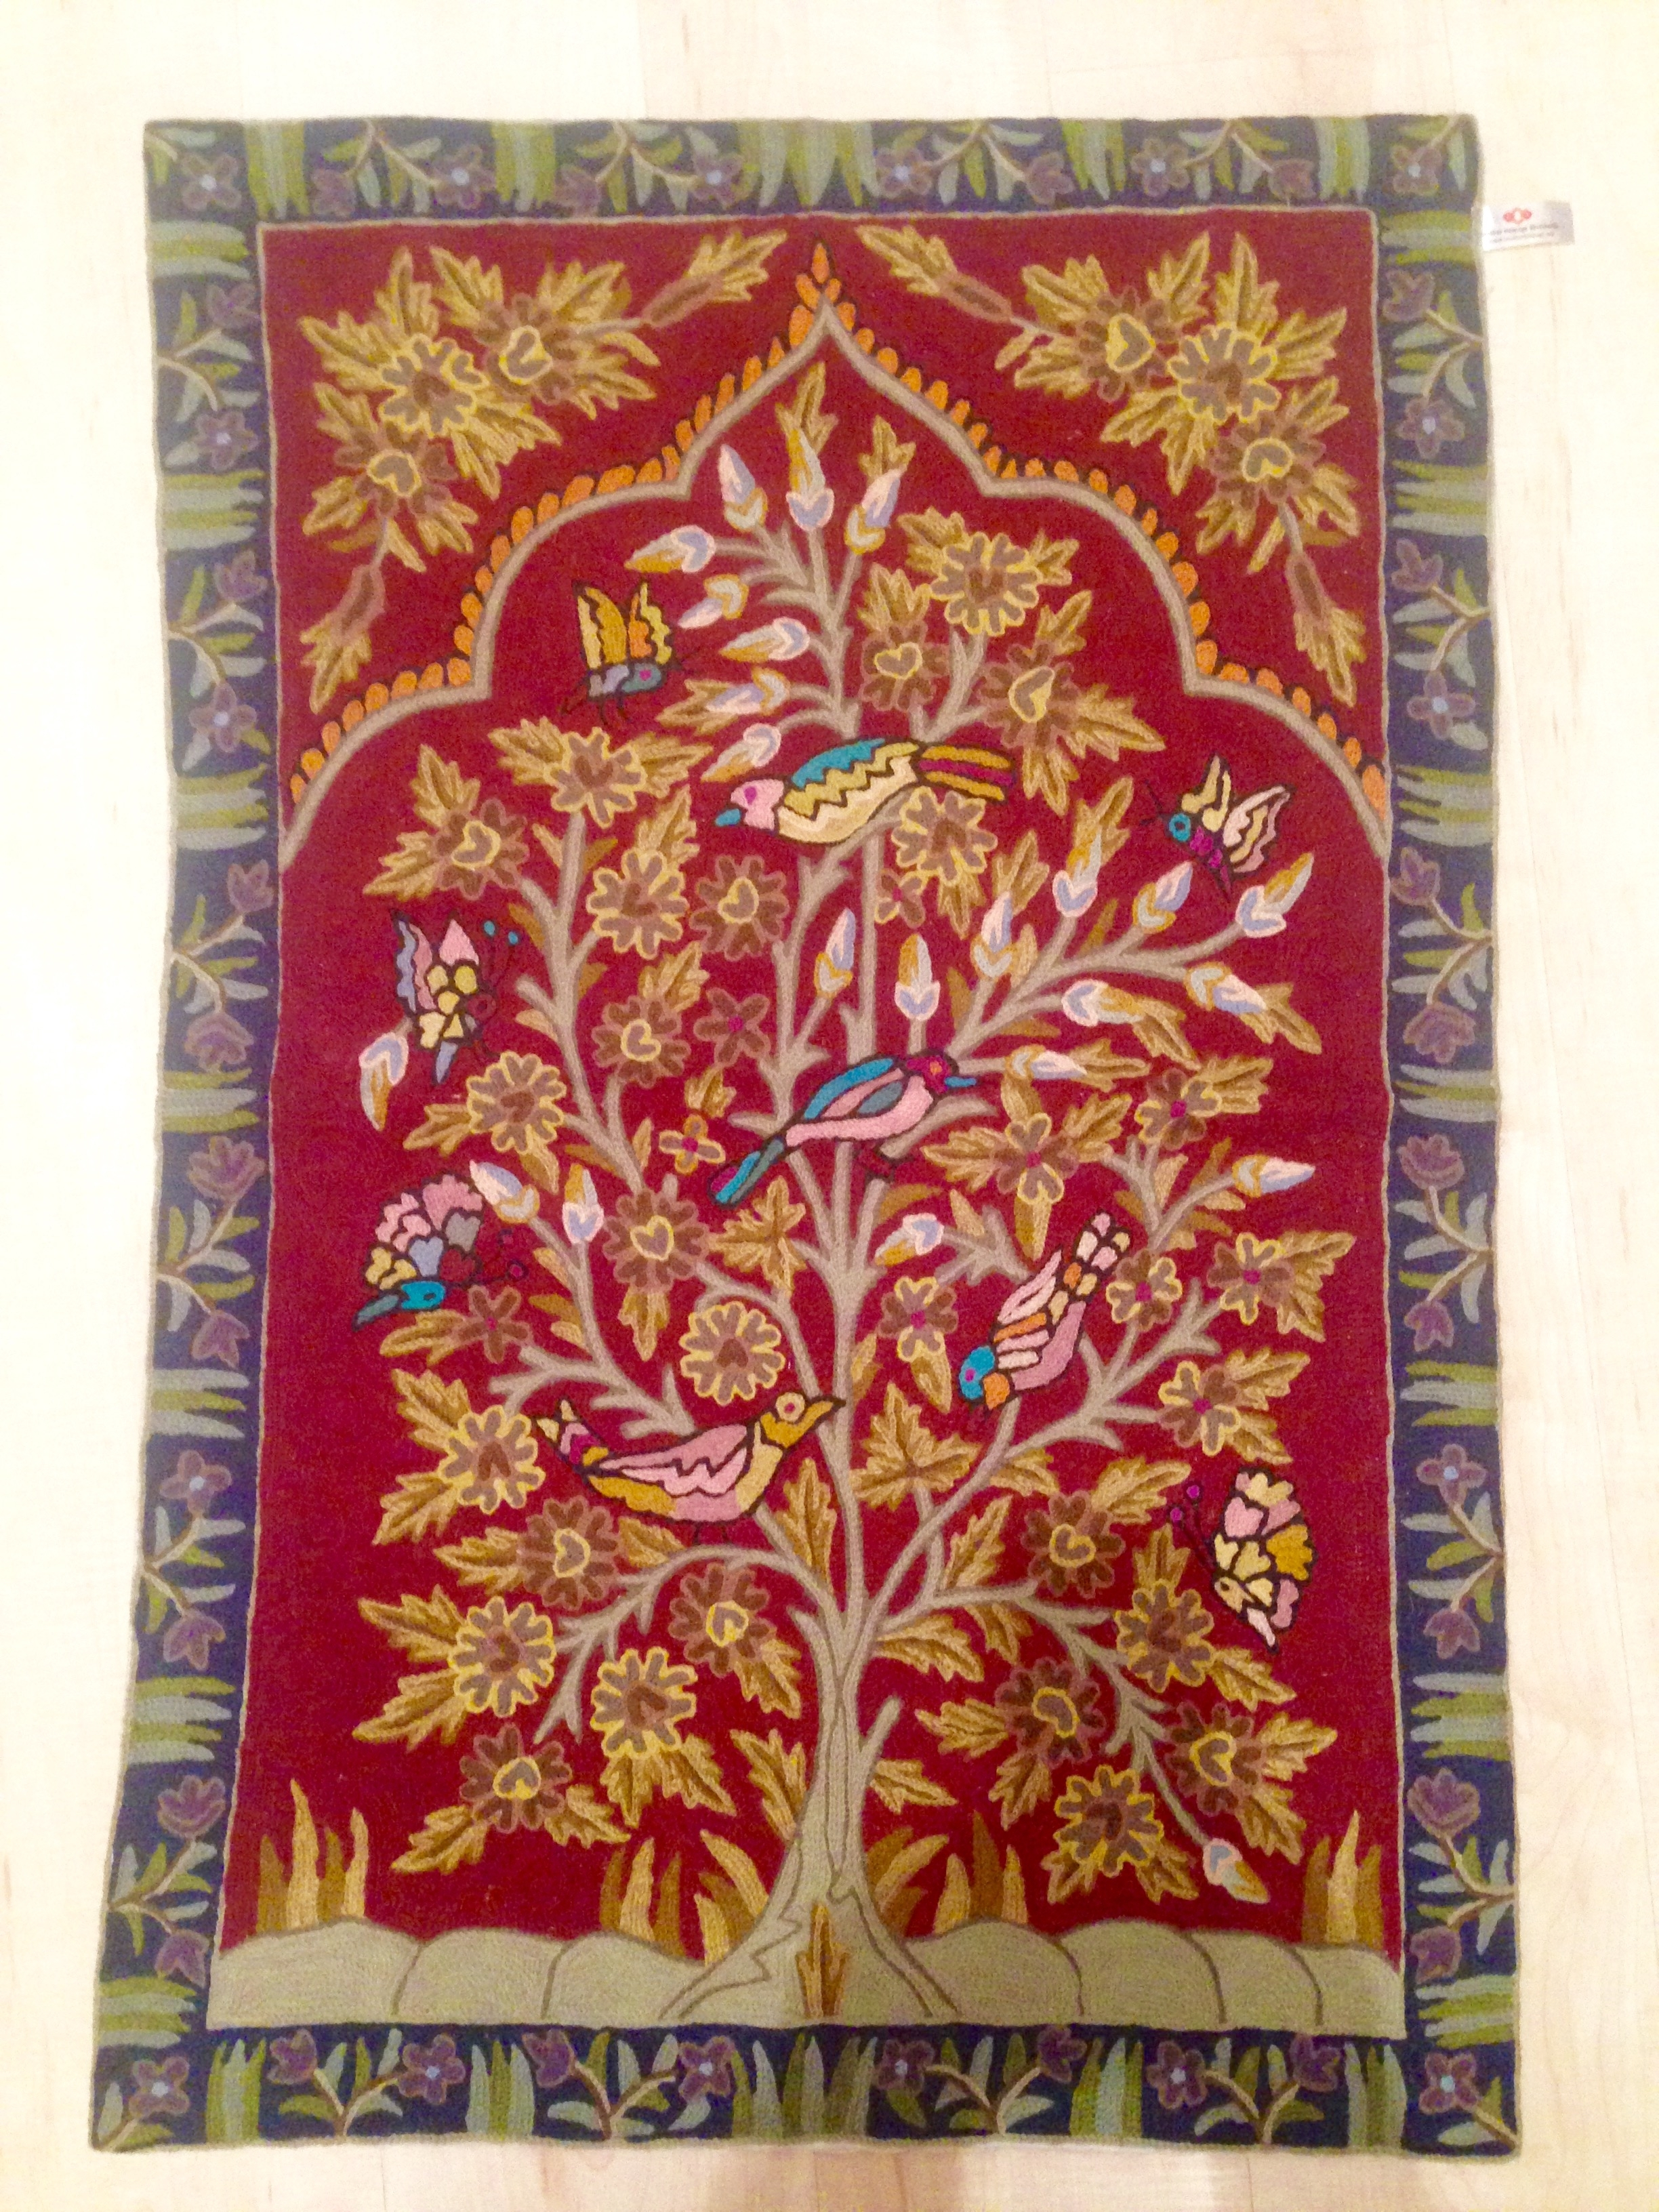 Handmade Kashmiri Wool Embroidery Wall Hanging Tapestry | Indian With Current Handmade Textile Wall Art (View 7 of 15)